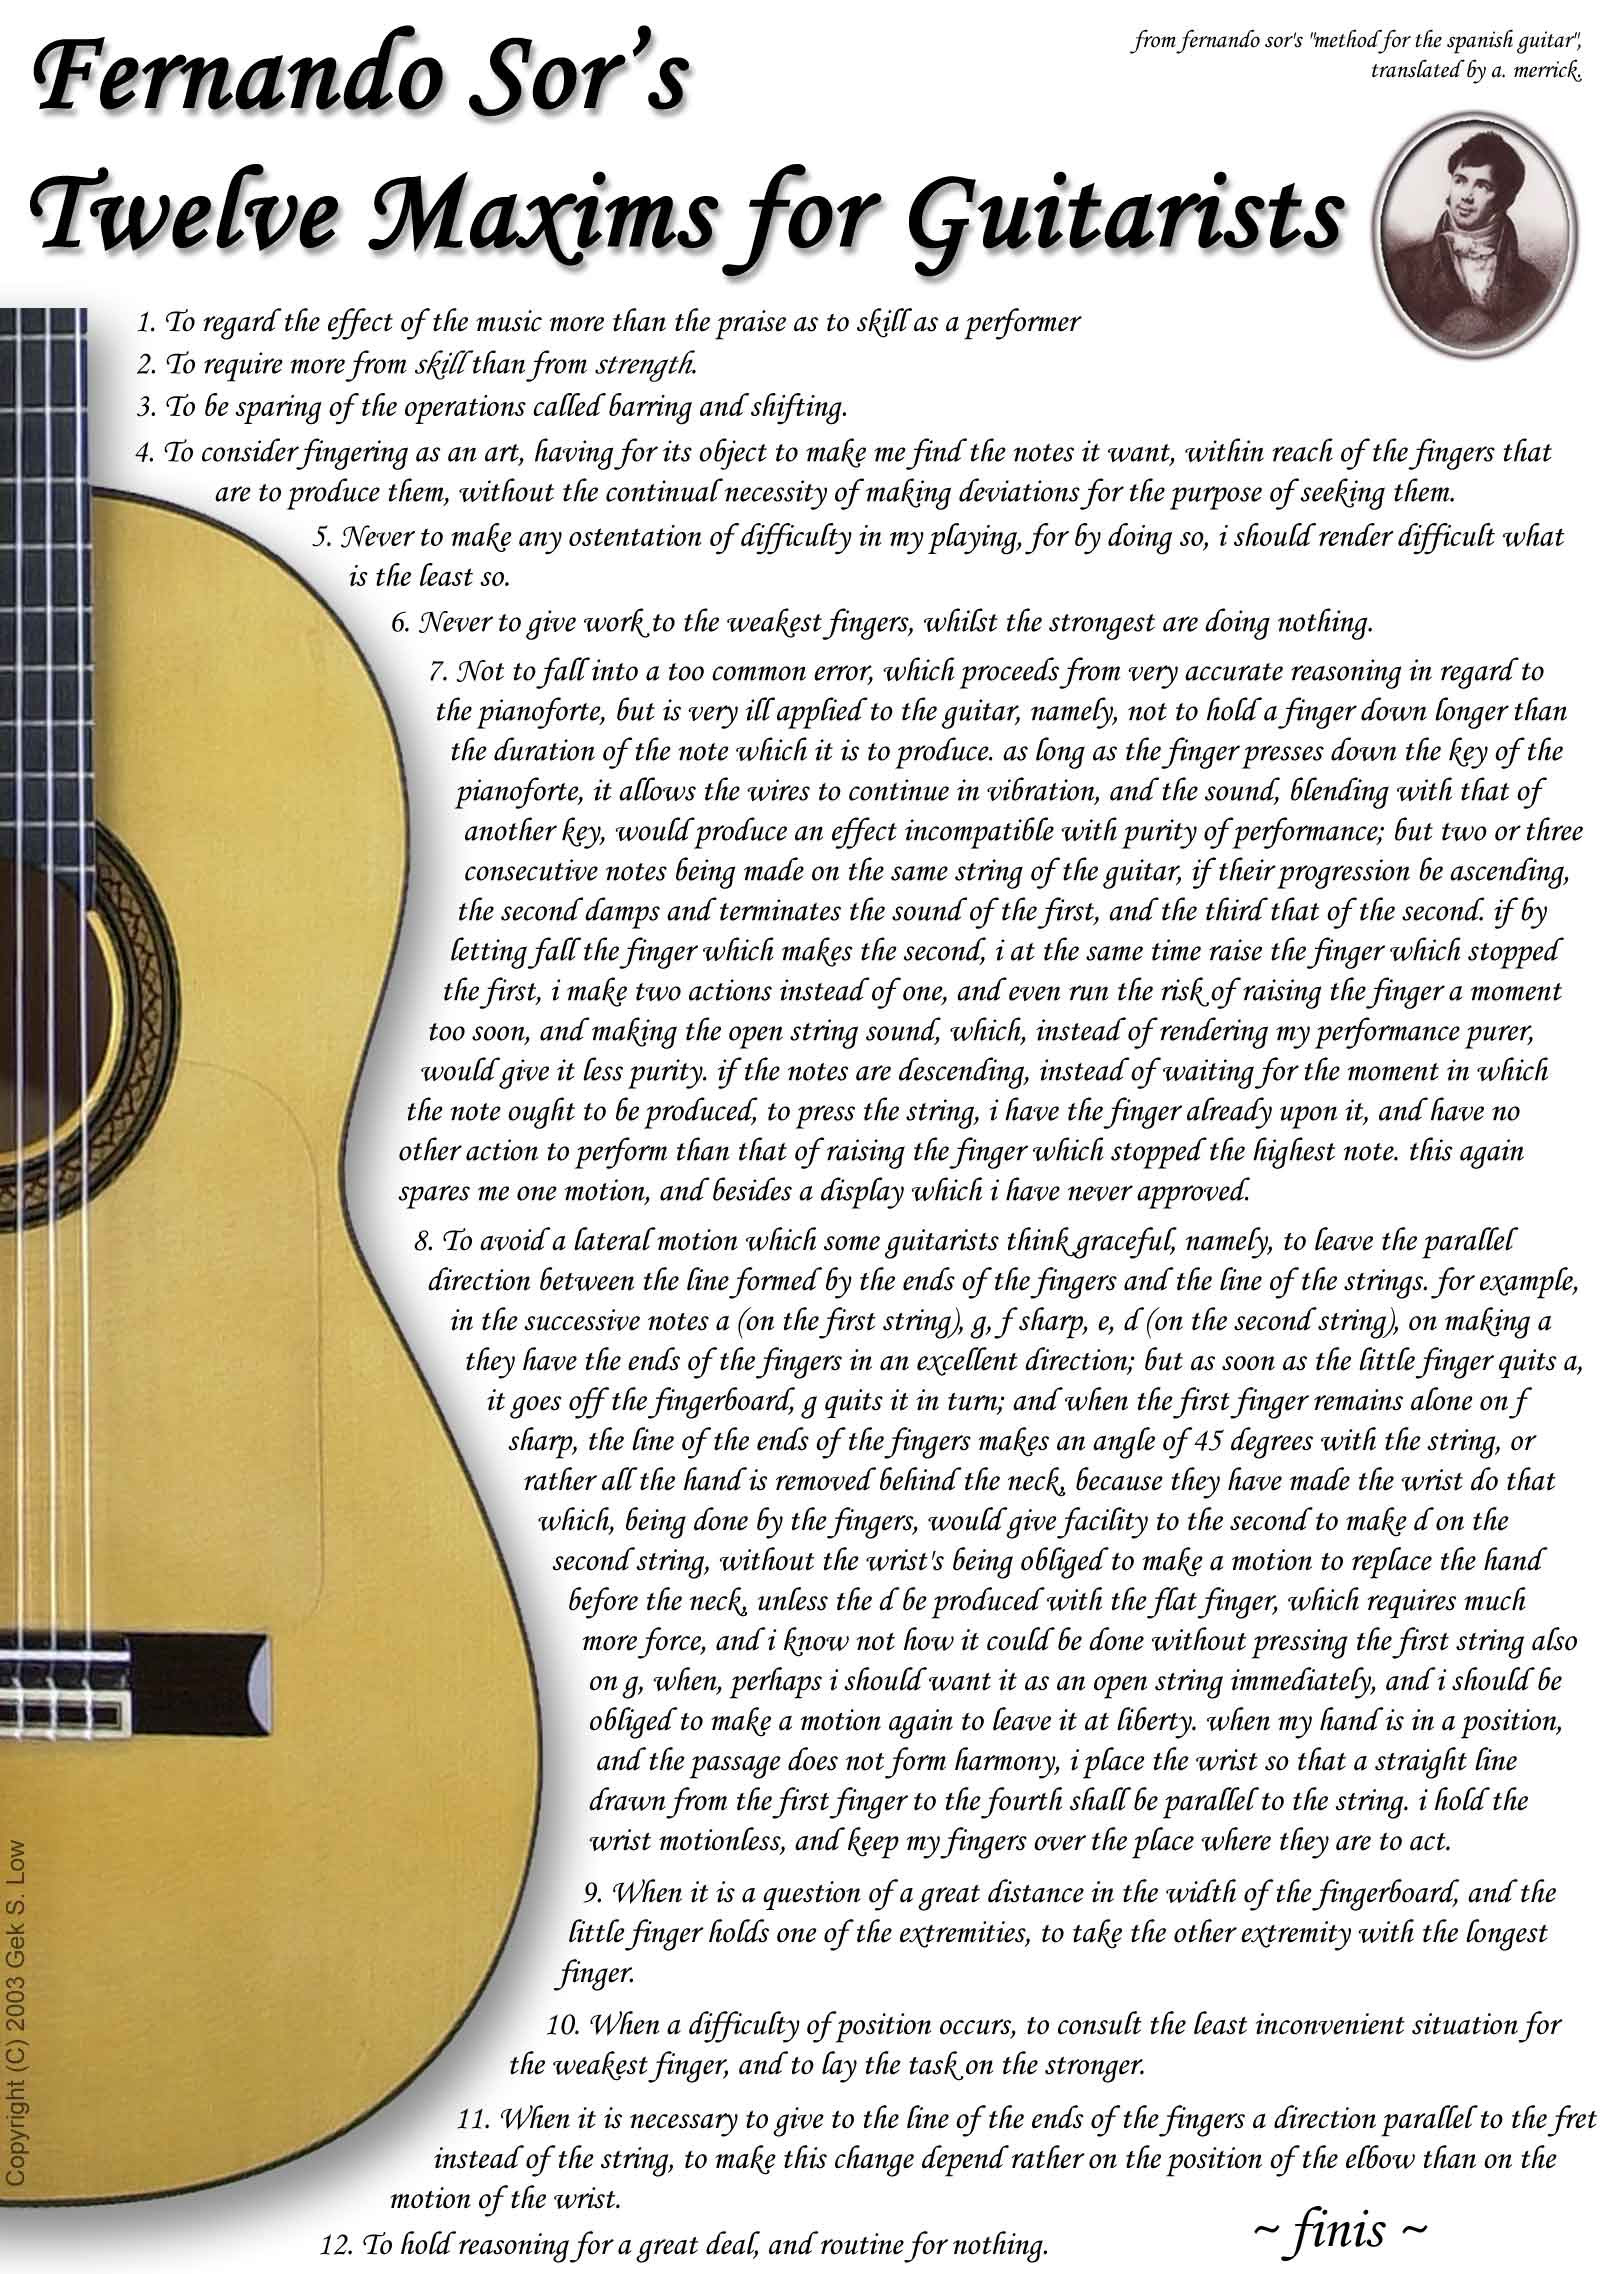 Guitar Related Artwork The Well Tempered Studio